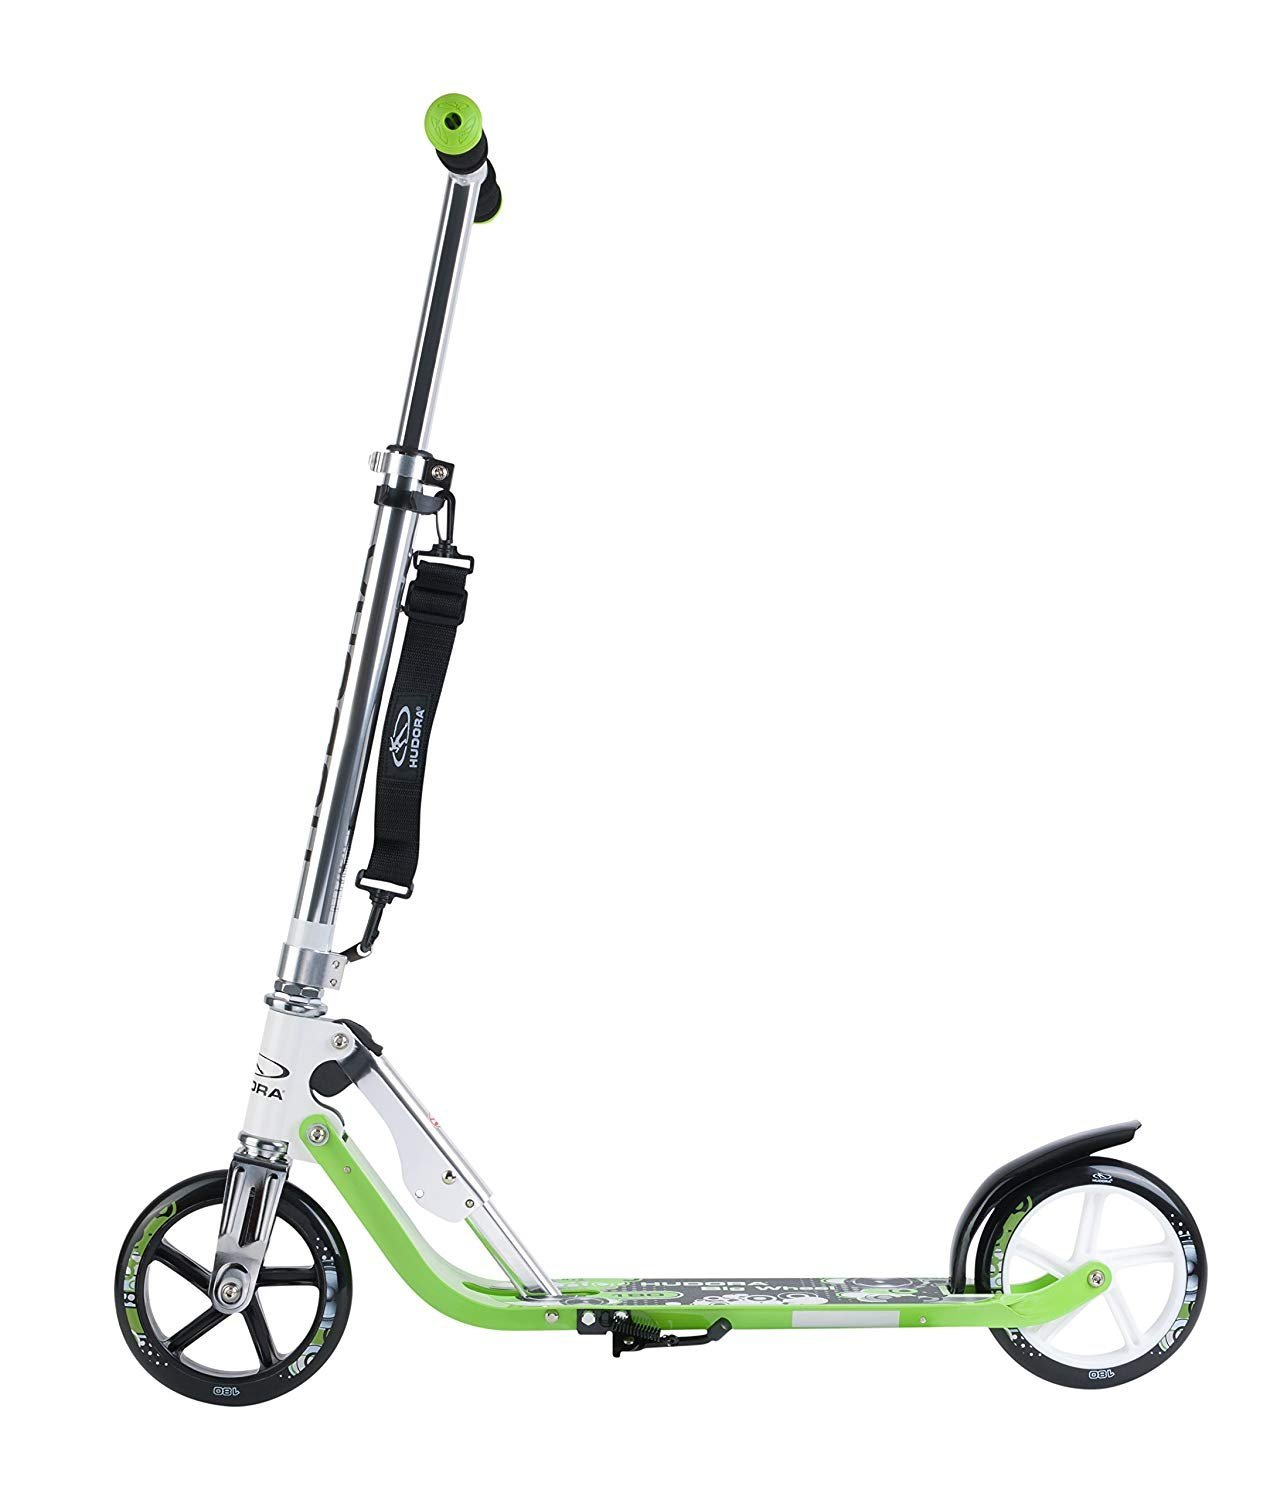 HUDORA Kick Scooter Adult Teen Kid For 8-15 Years Old With 180MM Big Wheels, Adjustable Height, Easy Folding Big Wheels Scooter-Green